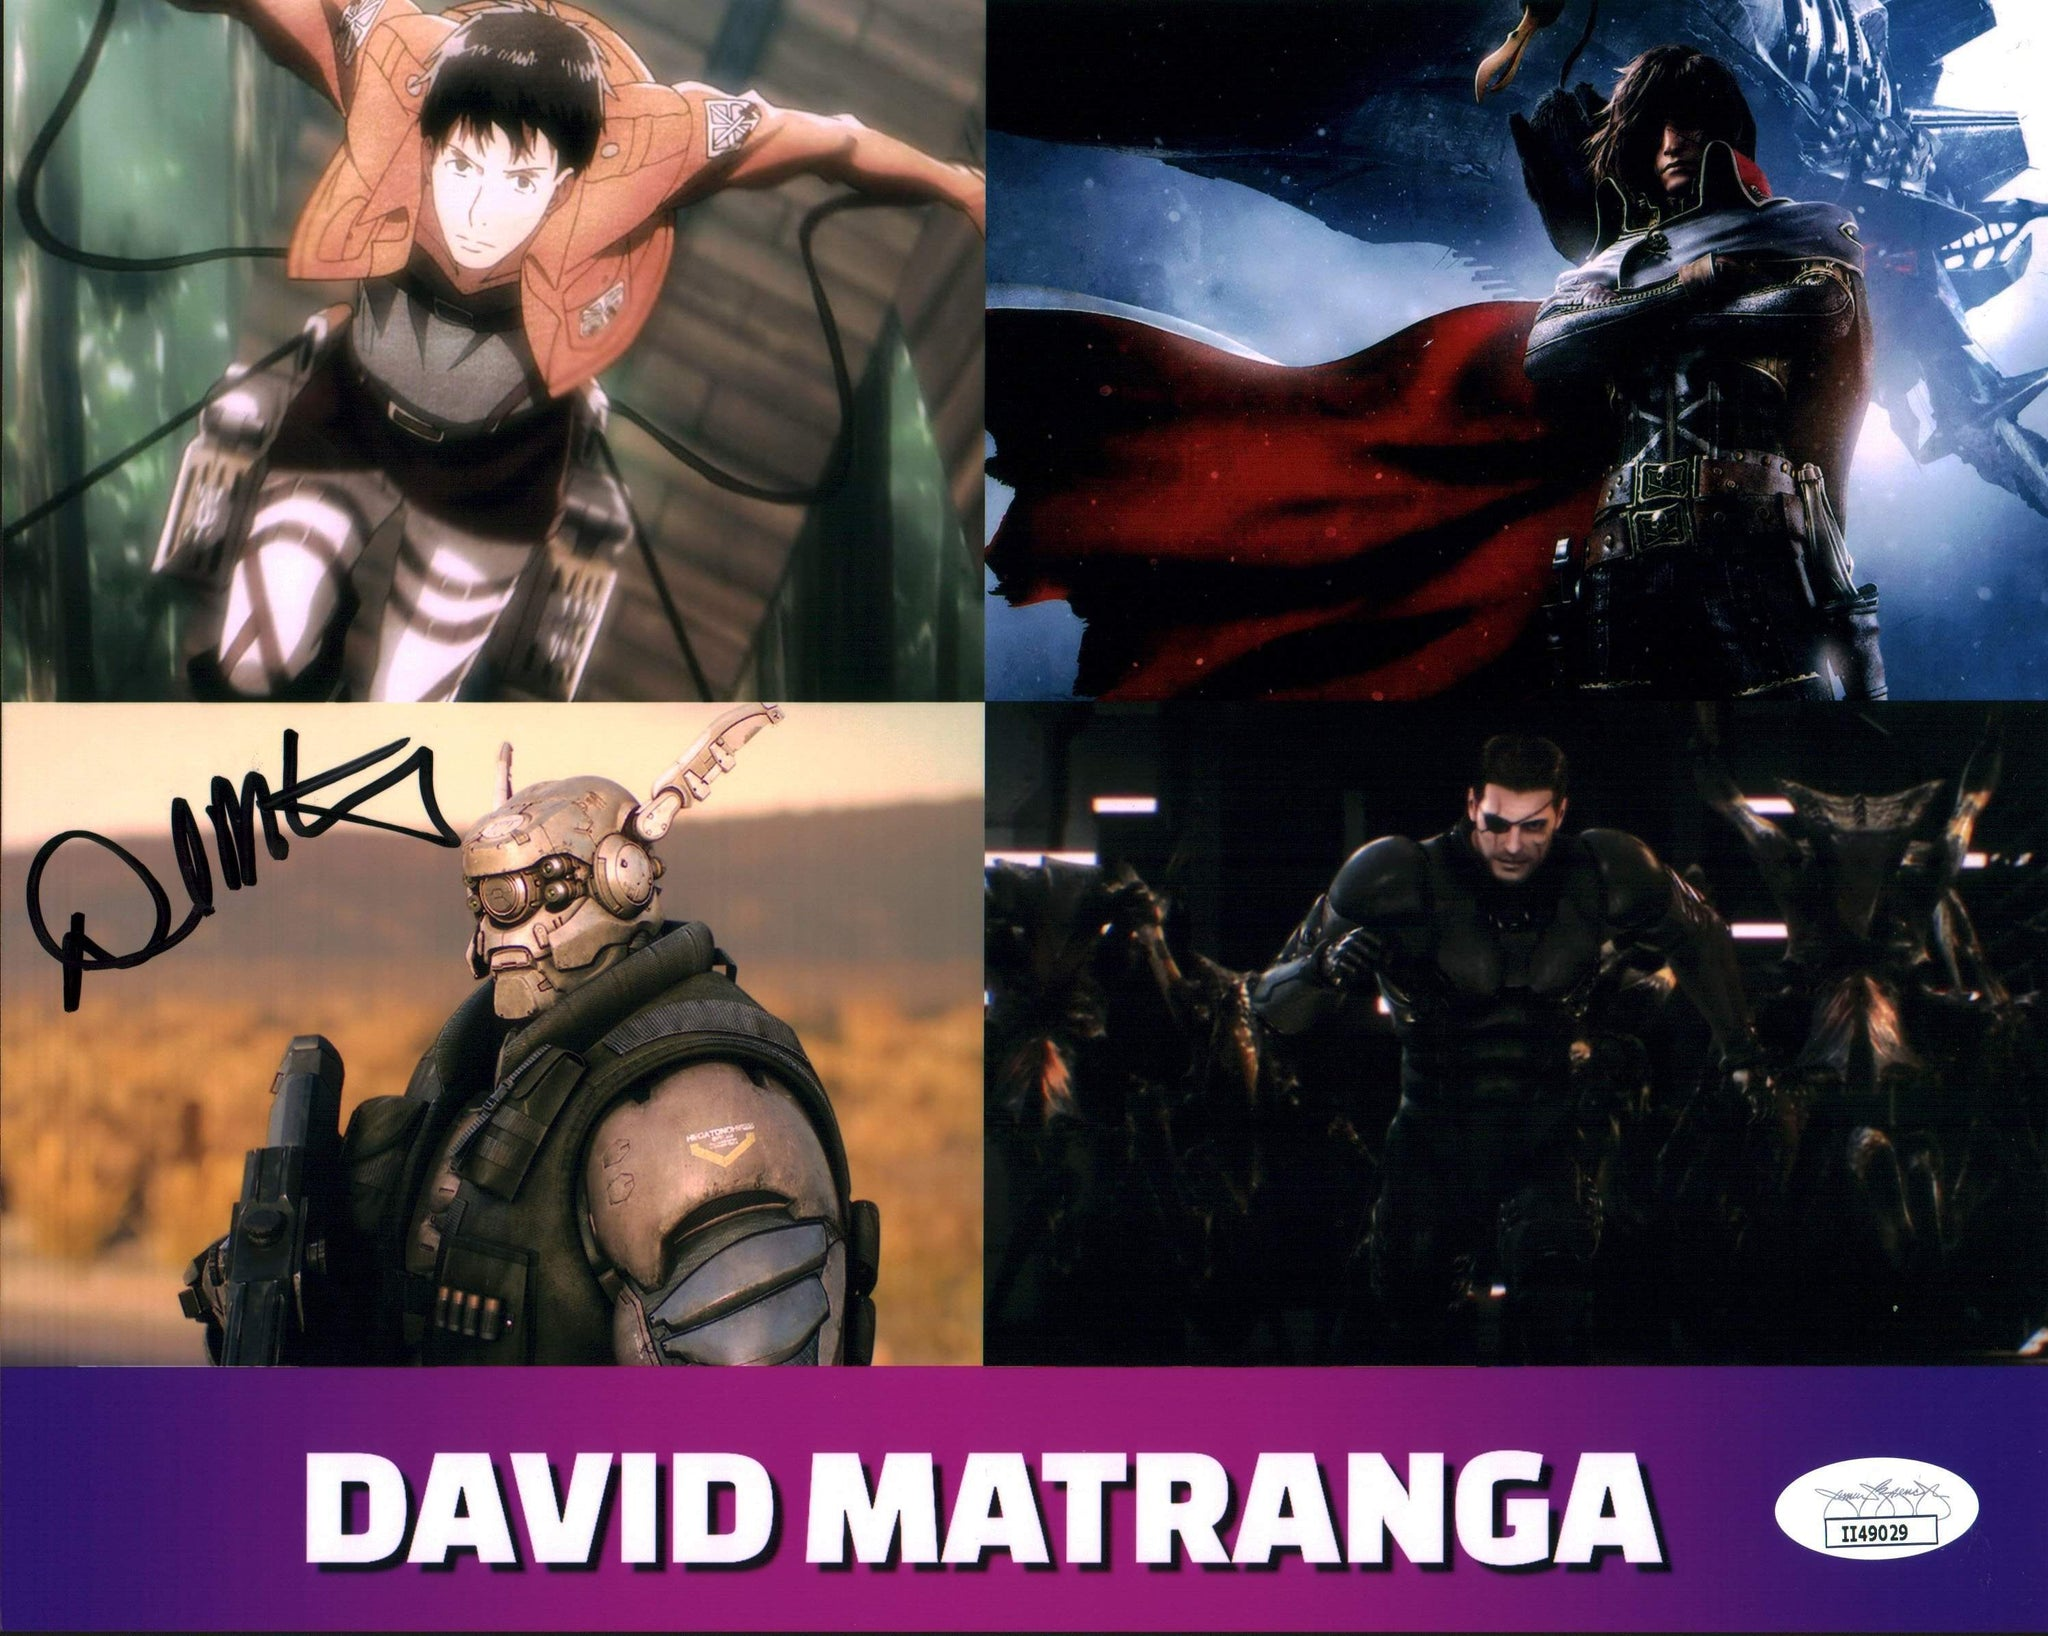 David Matranga Character Compilation 8x10 Photo Signed Autographed JSA Certified COA GalaxyCon